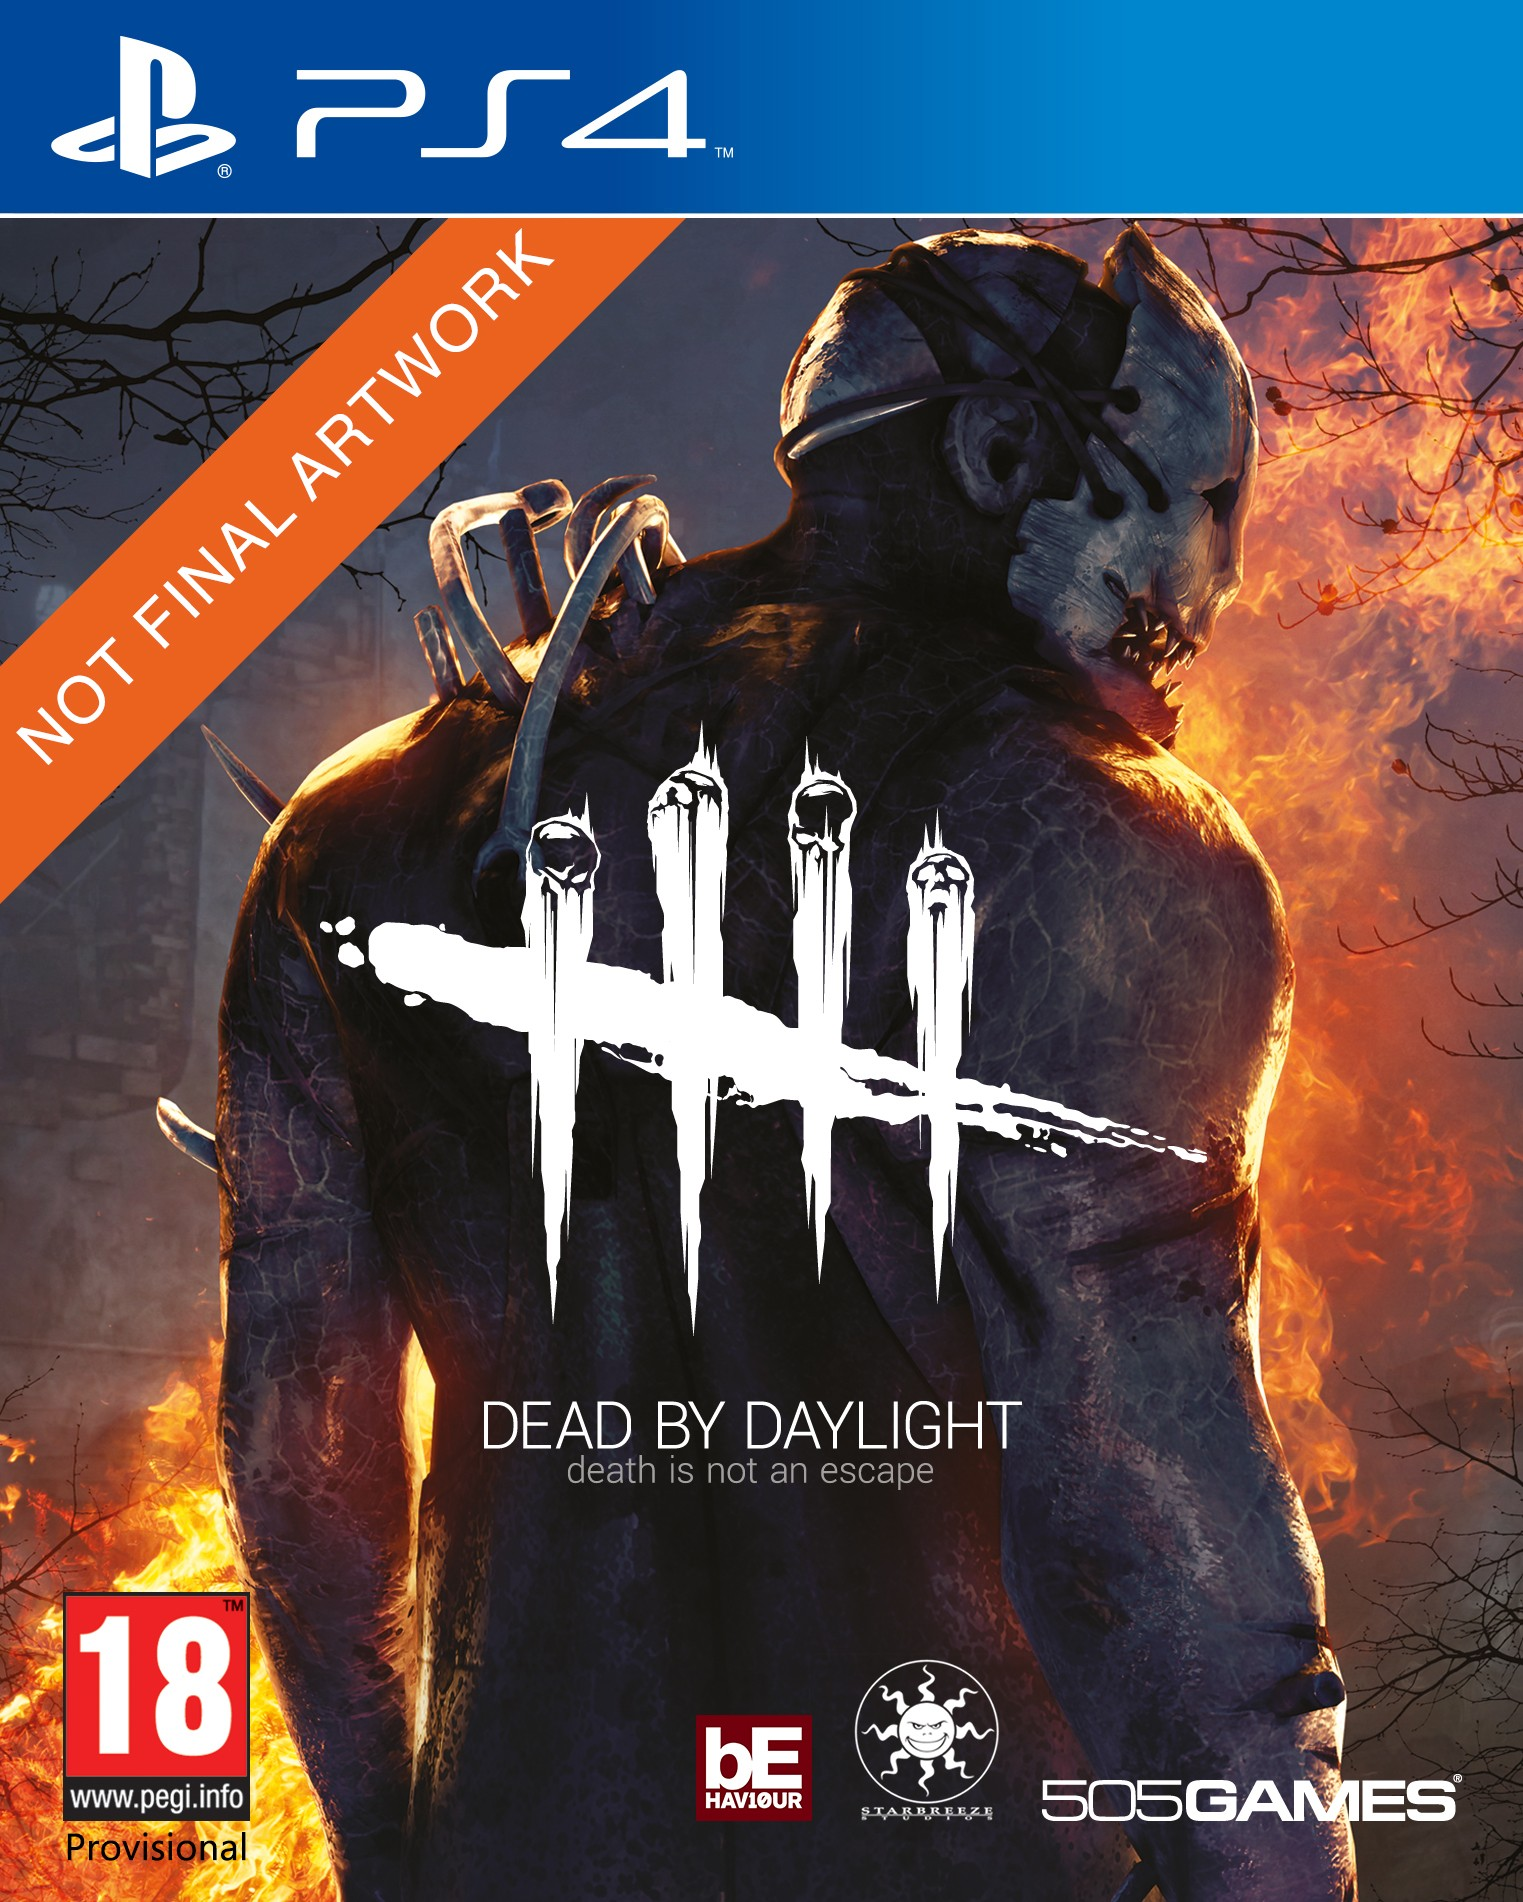 2D PS4 Dead by Daylight PEGI